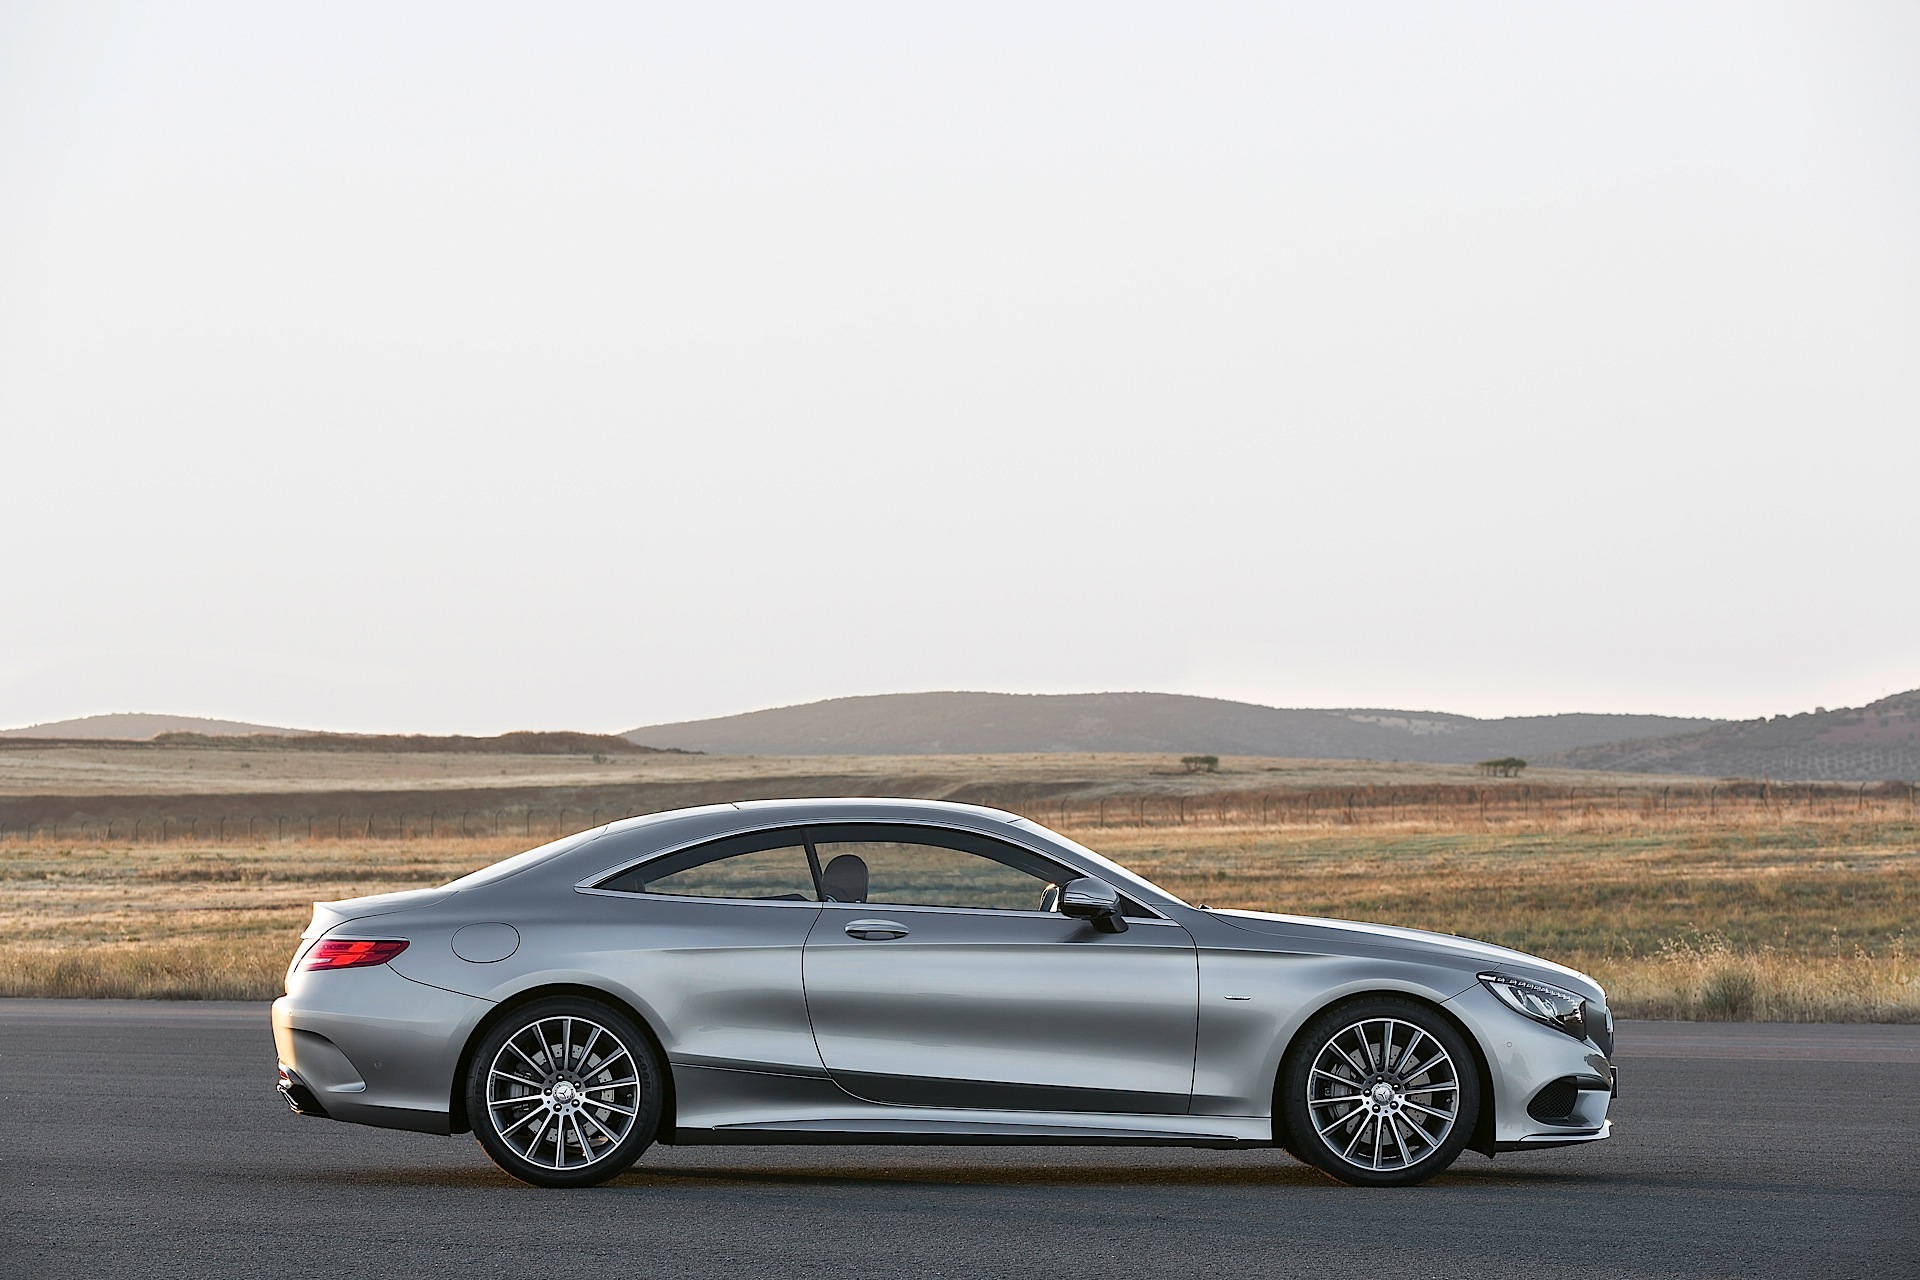 Mercedes benz s class coupe c217 specs 2014 2015 for Best looking mercedes benz models